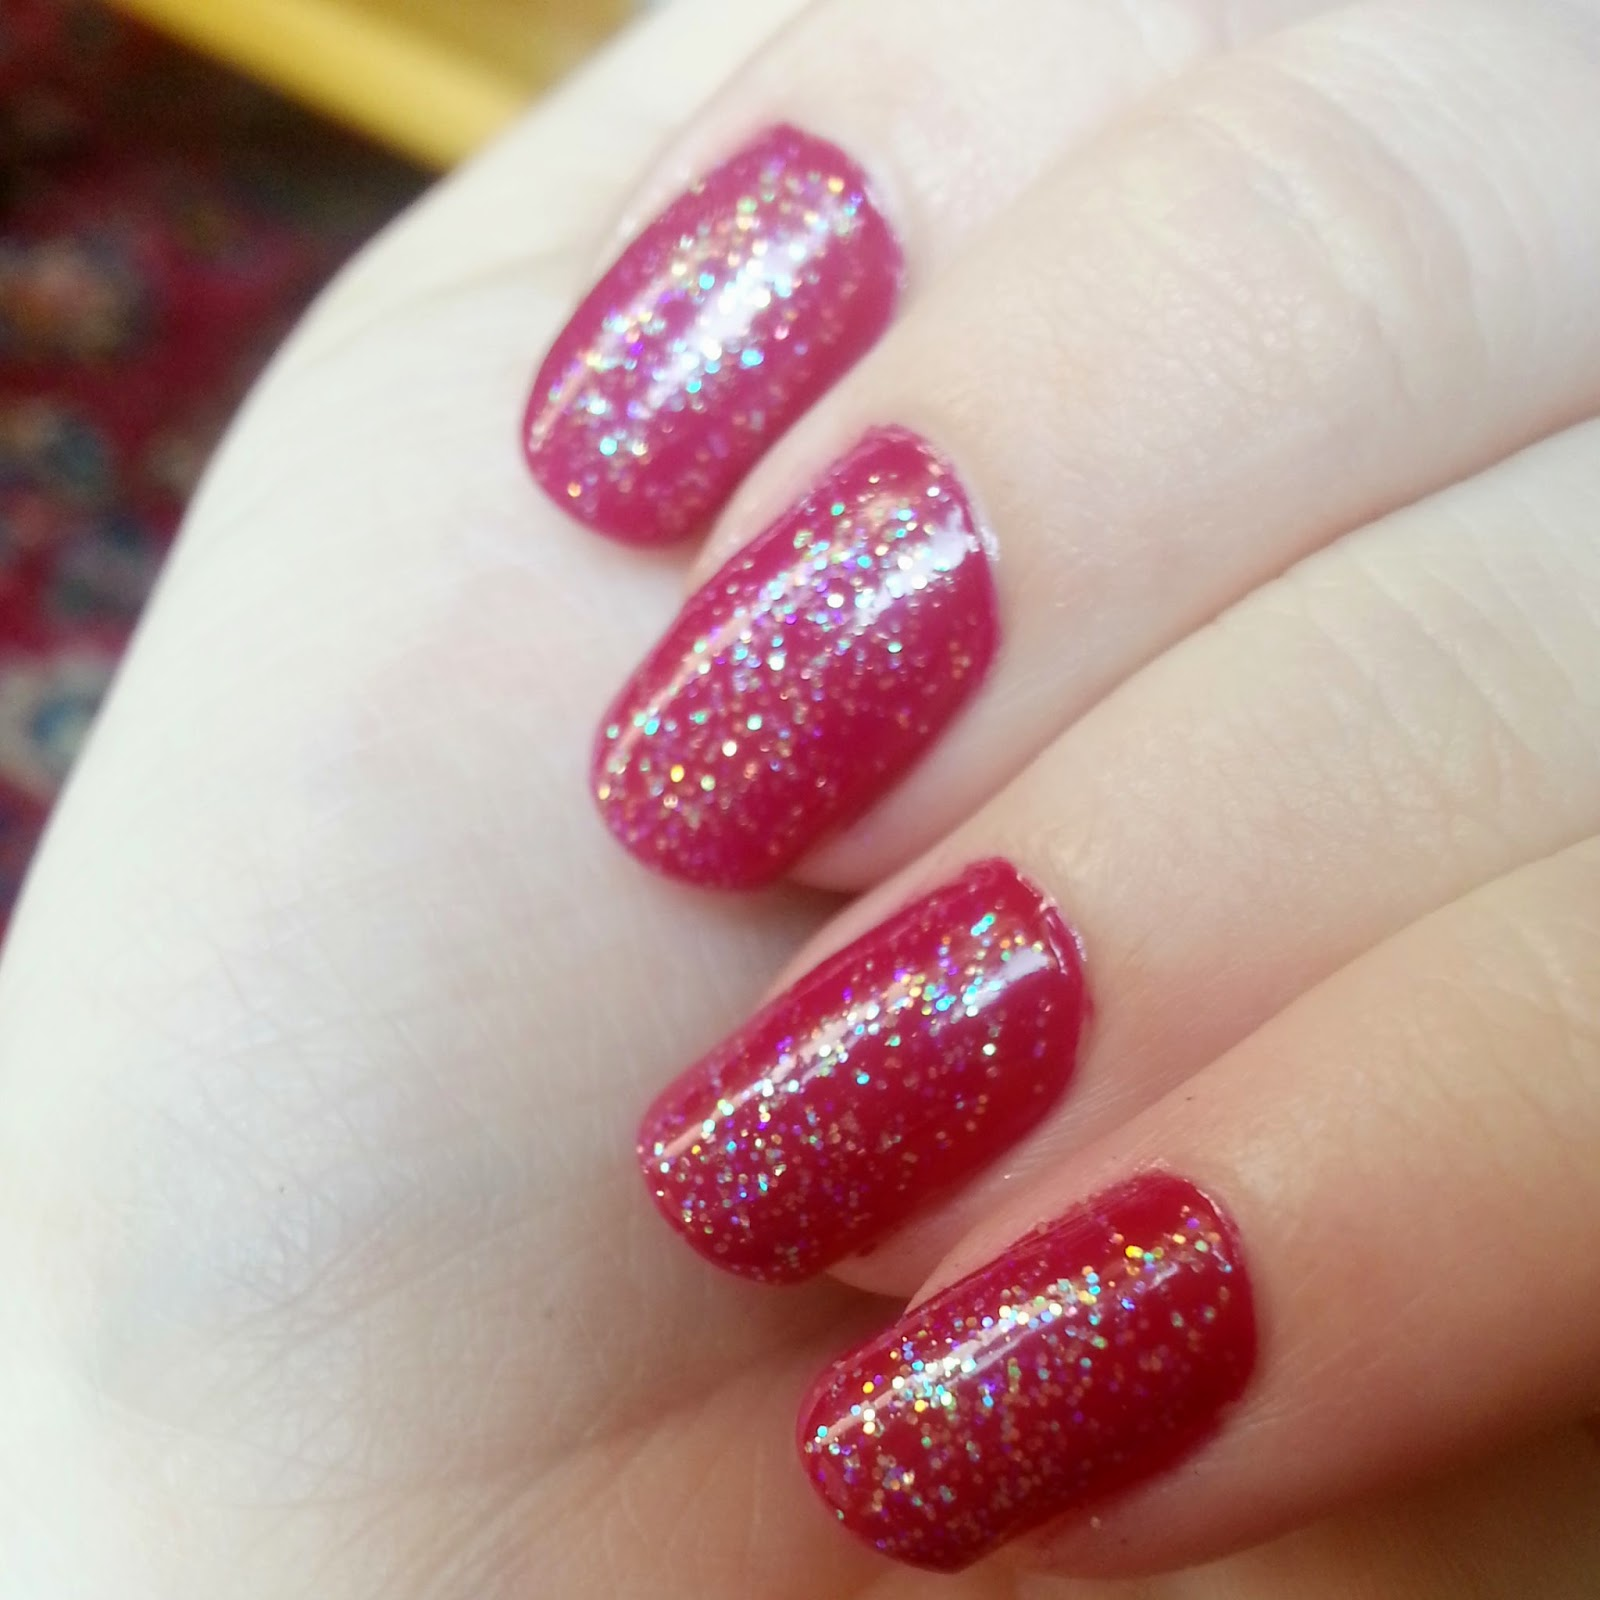 Essence Gel Nail Polish Space Queen: Whimsy Is Forever: Monday Manicure: Berry Sparkles